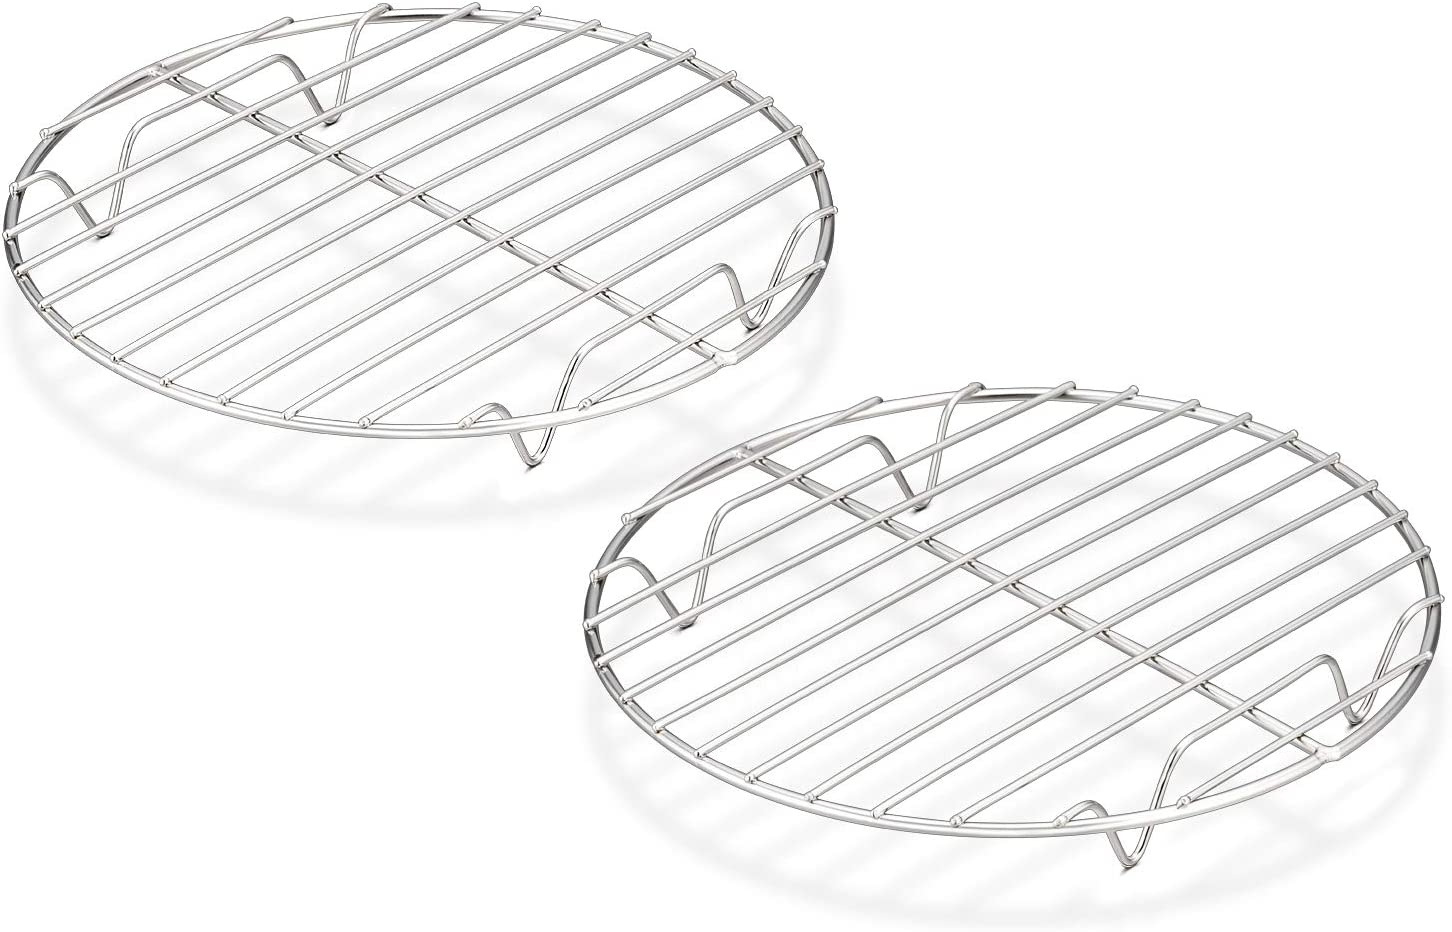 TeamFar Round Cooling Rack Set of 2, 7½ Inch Round Rack Baking Steaming Roasting Rack Set Stainless Steel, Healthy & Dishwasher Safe, Mirror Finish & Rust Free